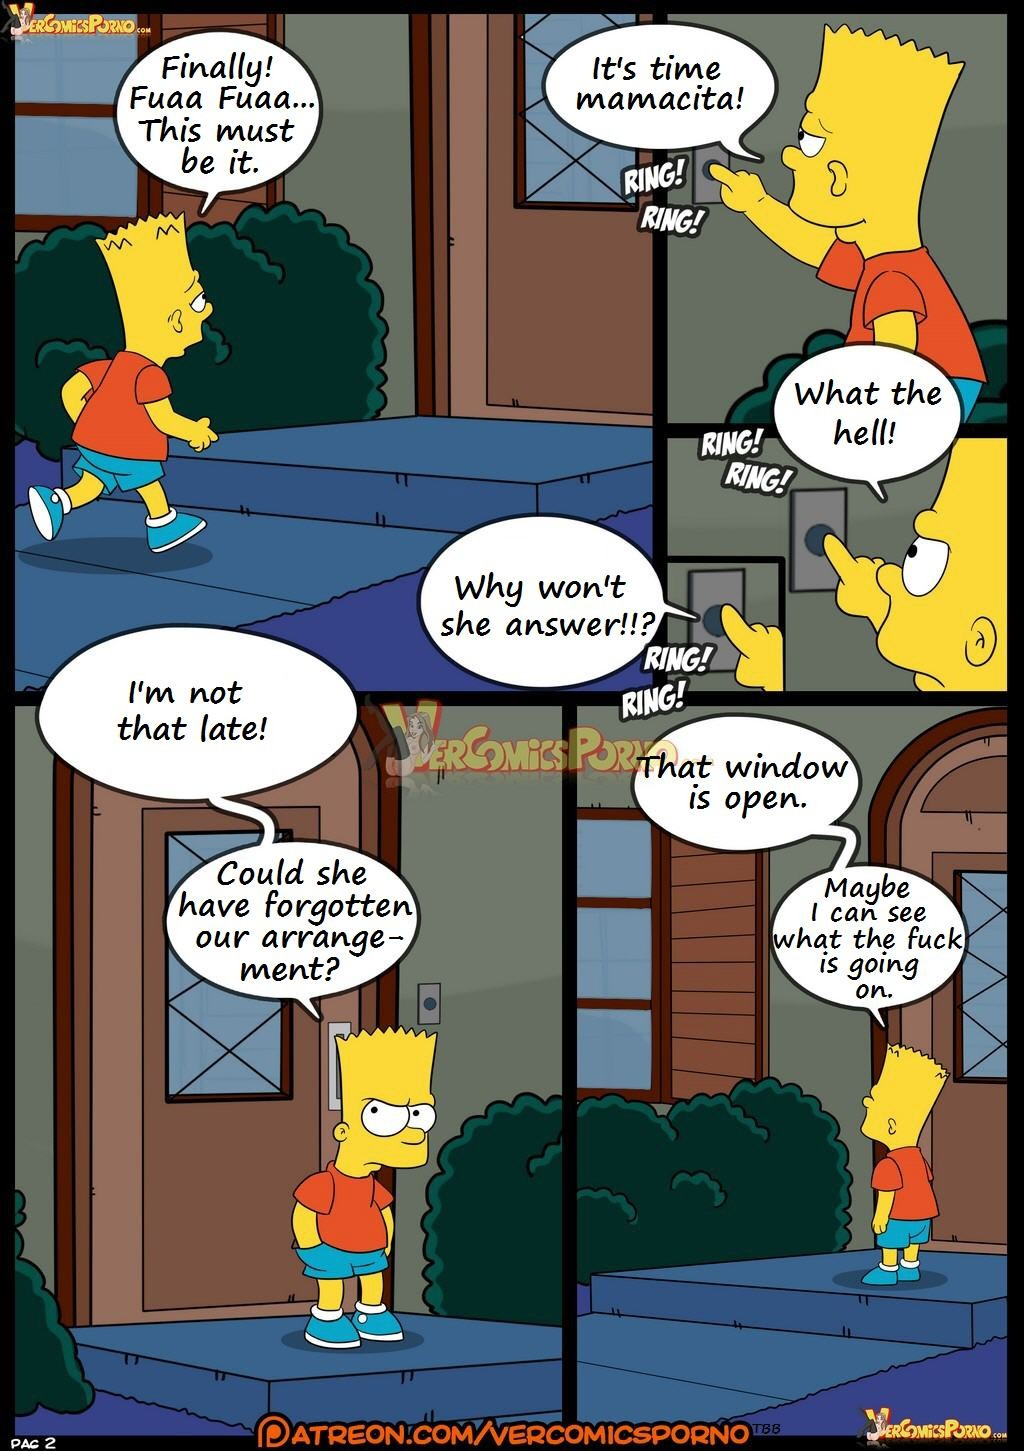 3 18 - The Simpsons. Part 8.